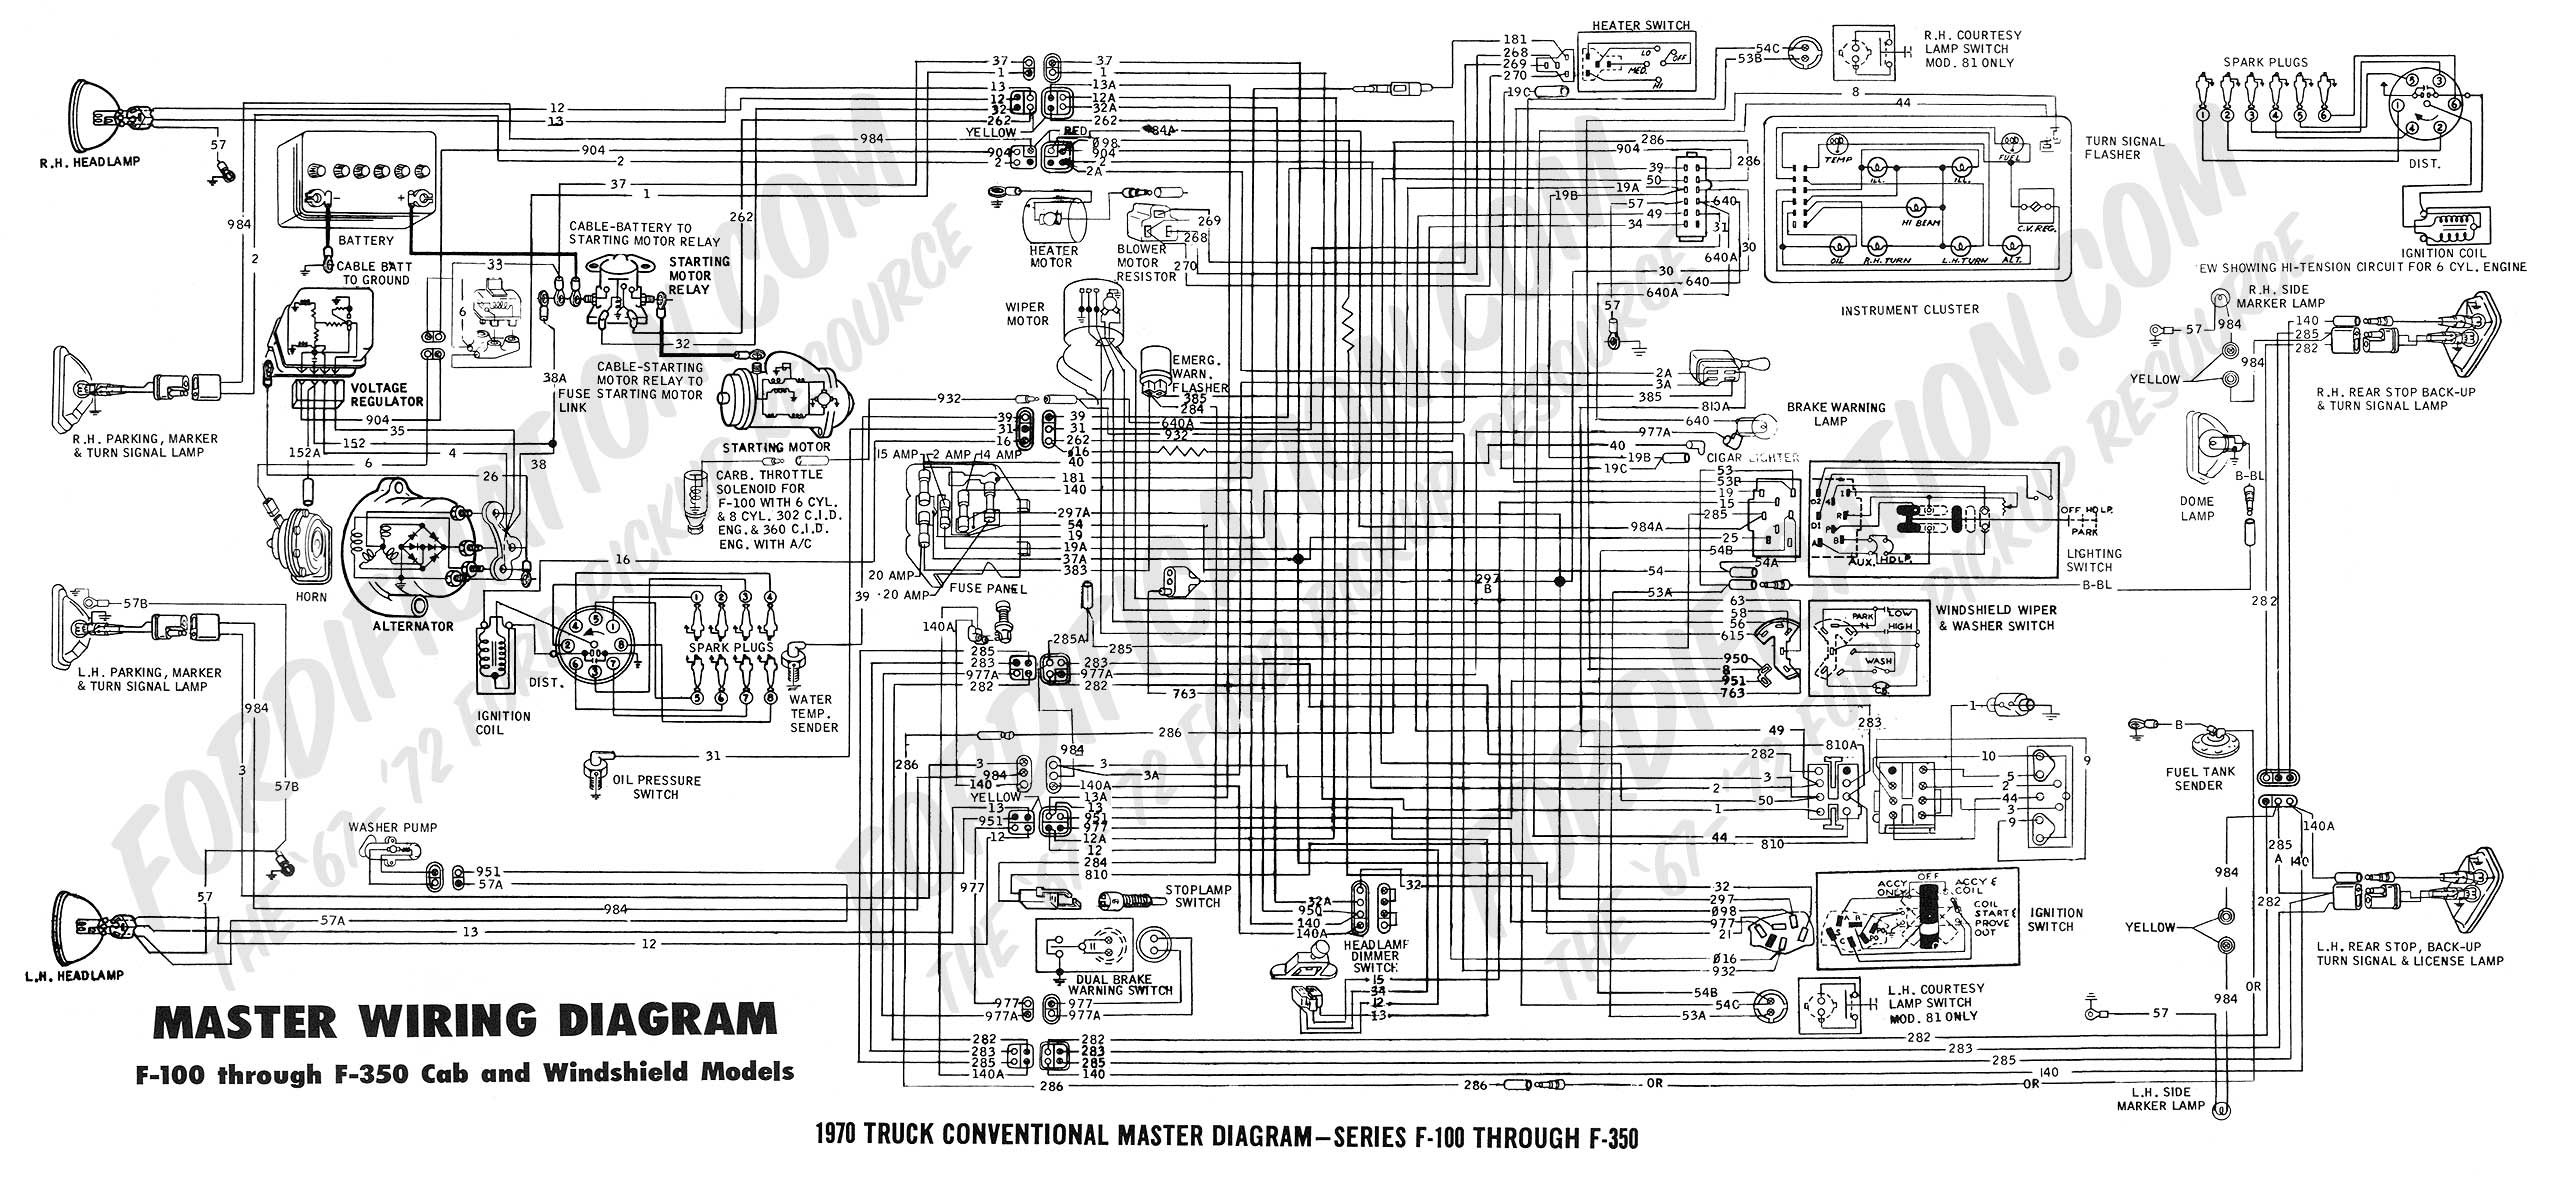 wiring diagram 70_master wiring diagram for 2007 freightliner columbia ireleast Wiring Harness Diagram at arjmand.co